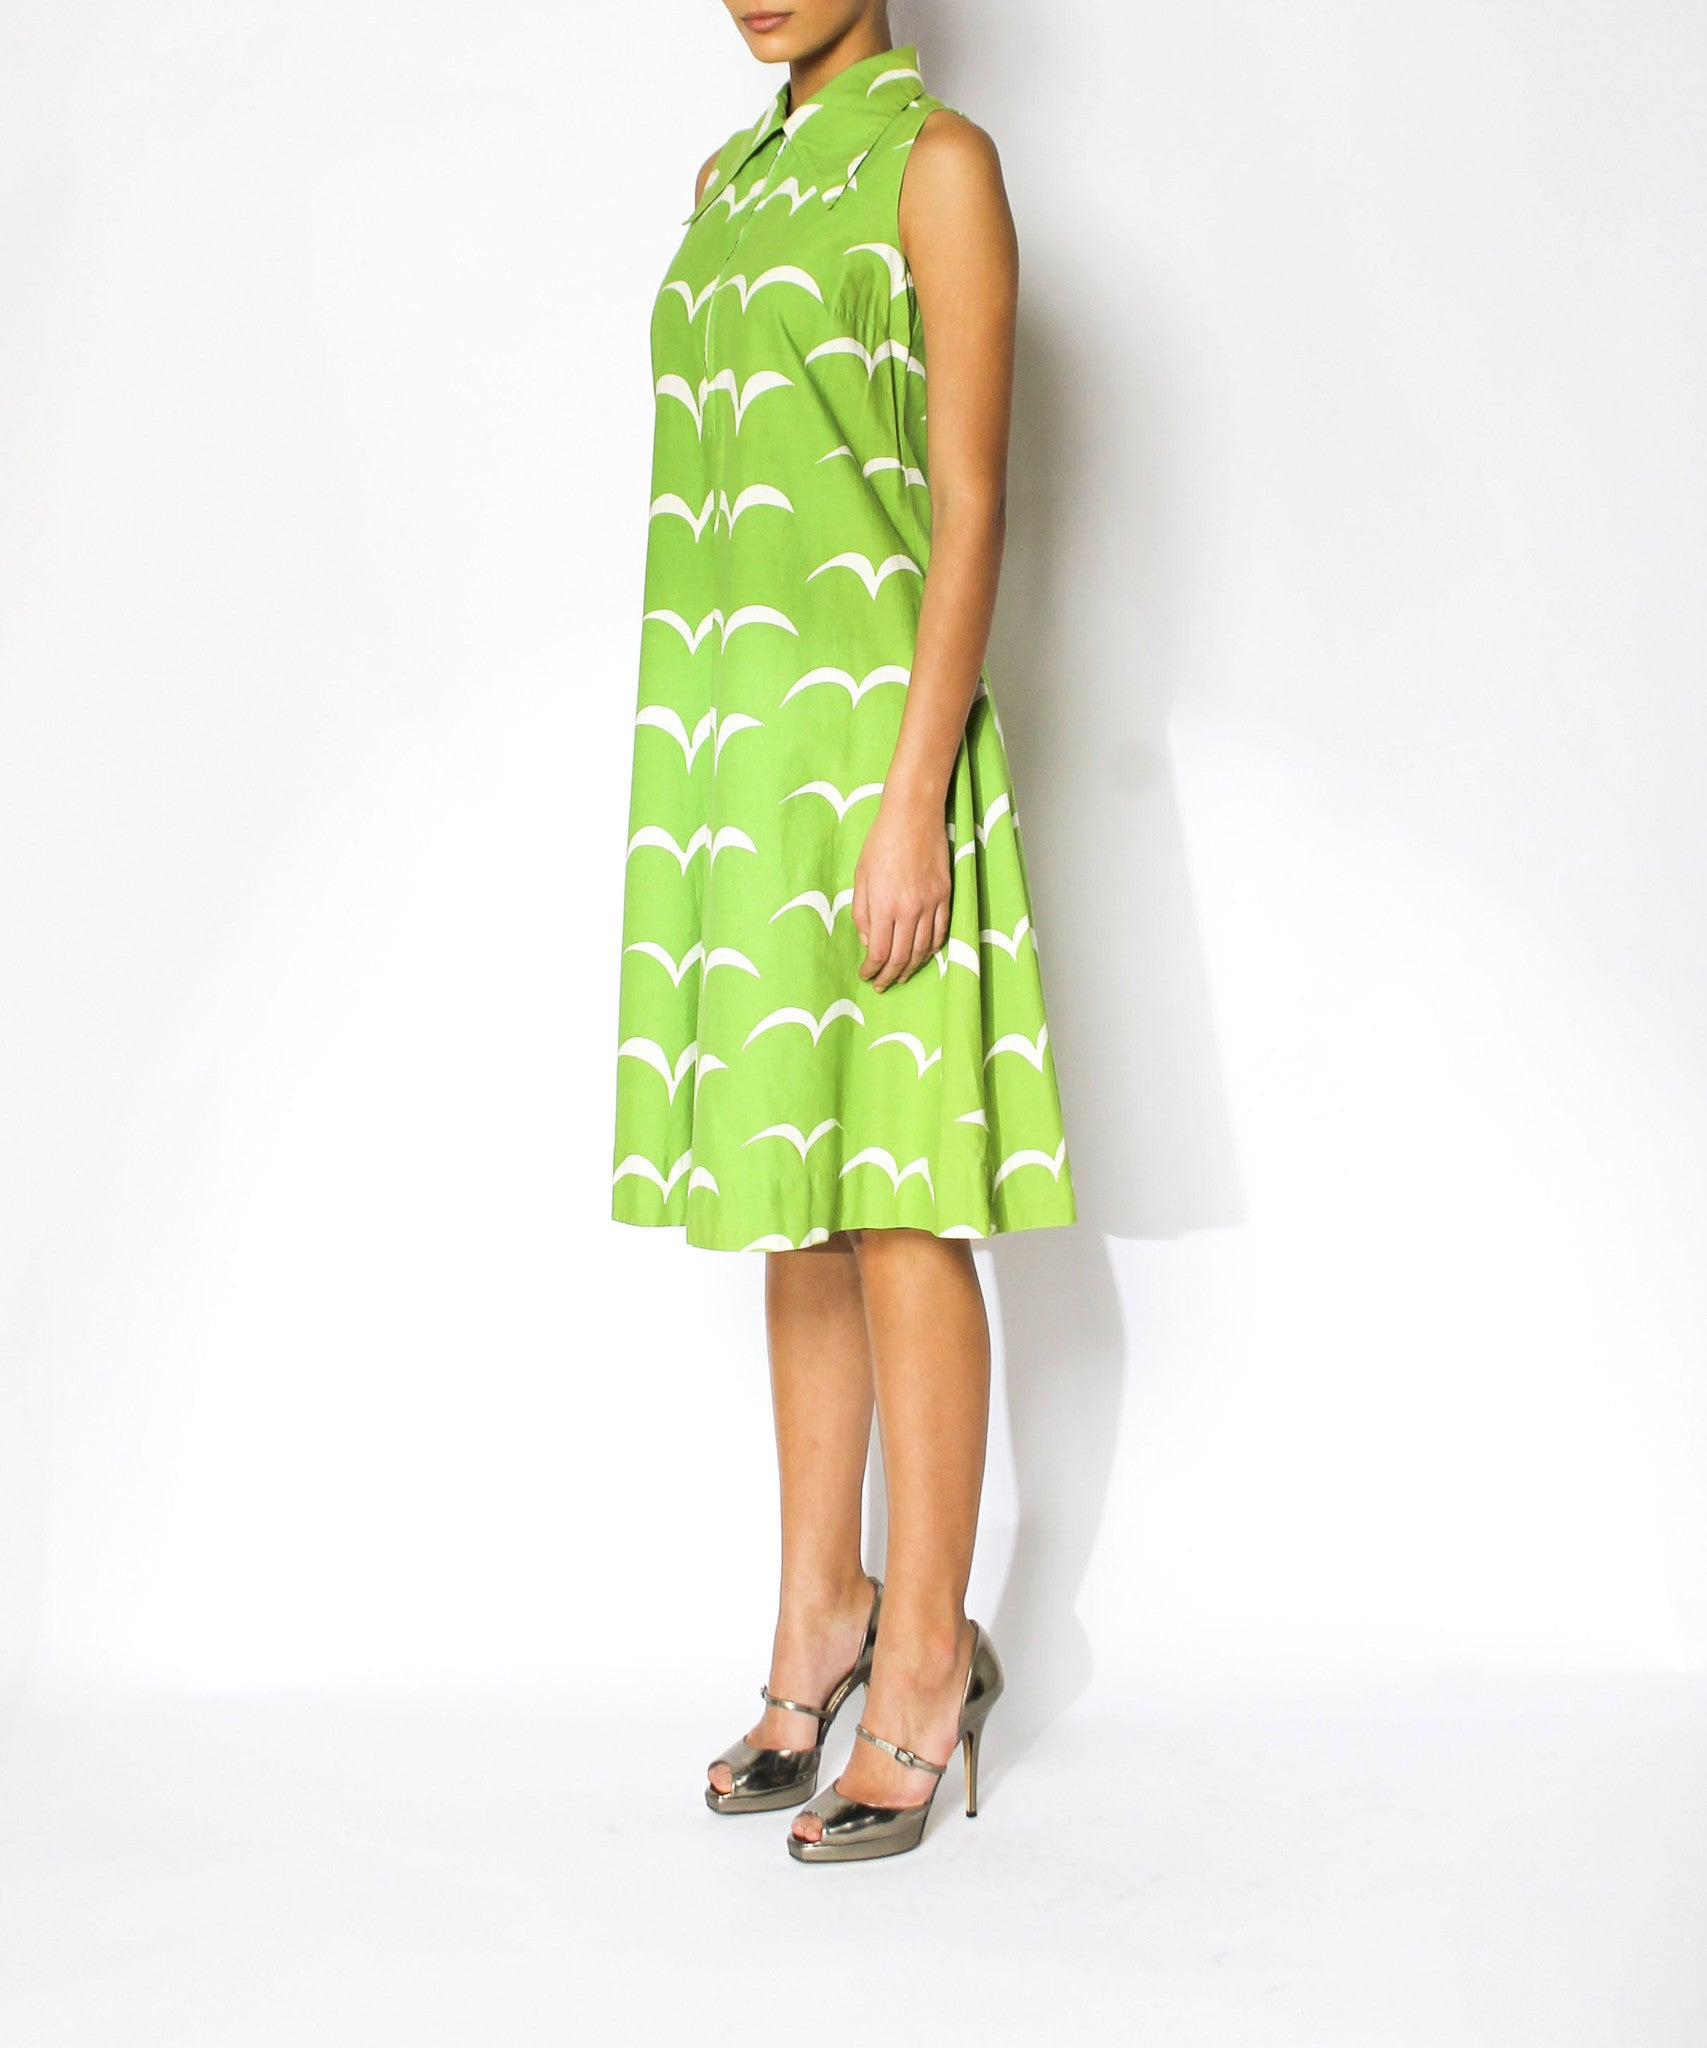 Marimekko 1974 Lime & White Print Shift Dress - C.Madeleine's